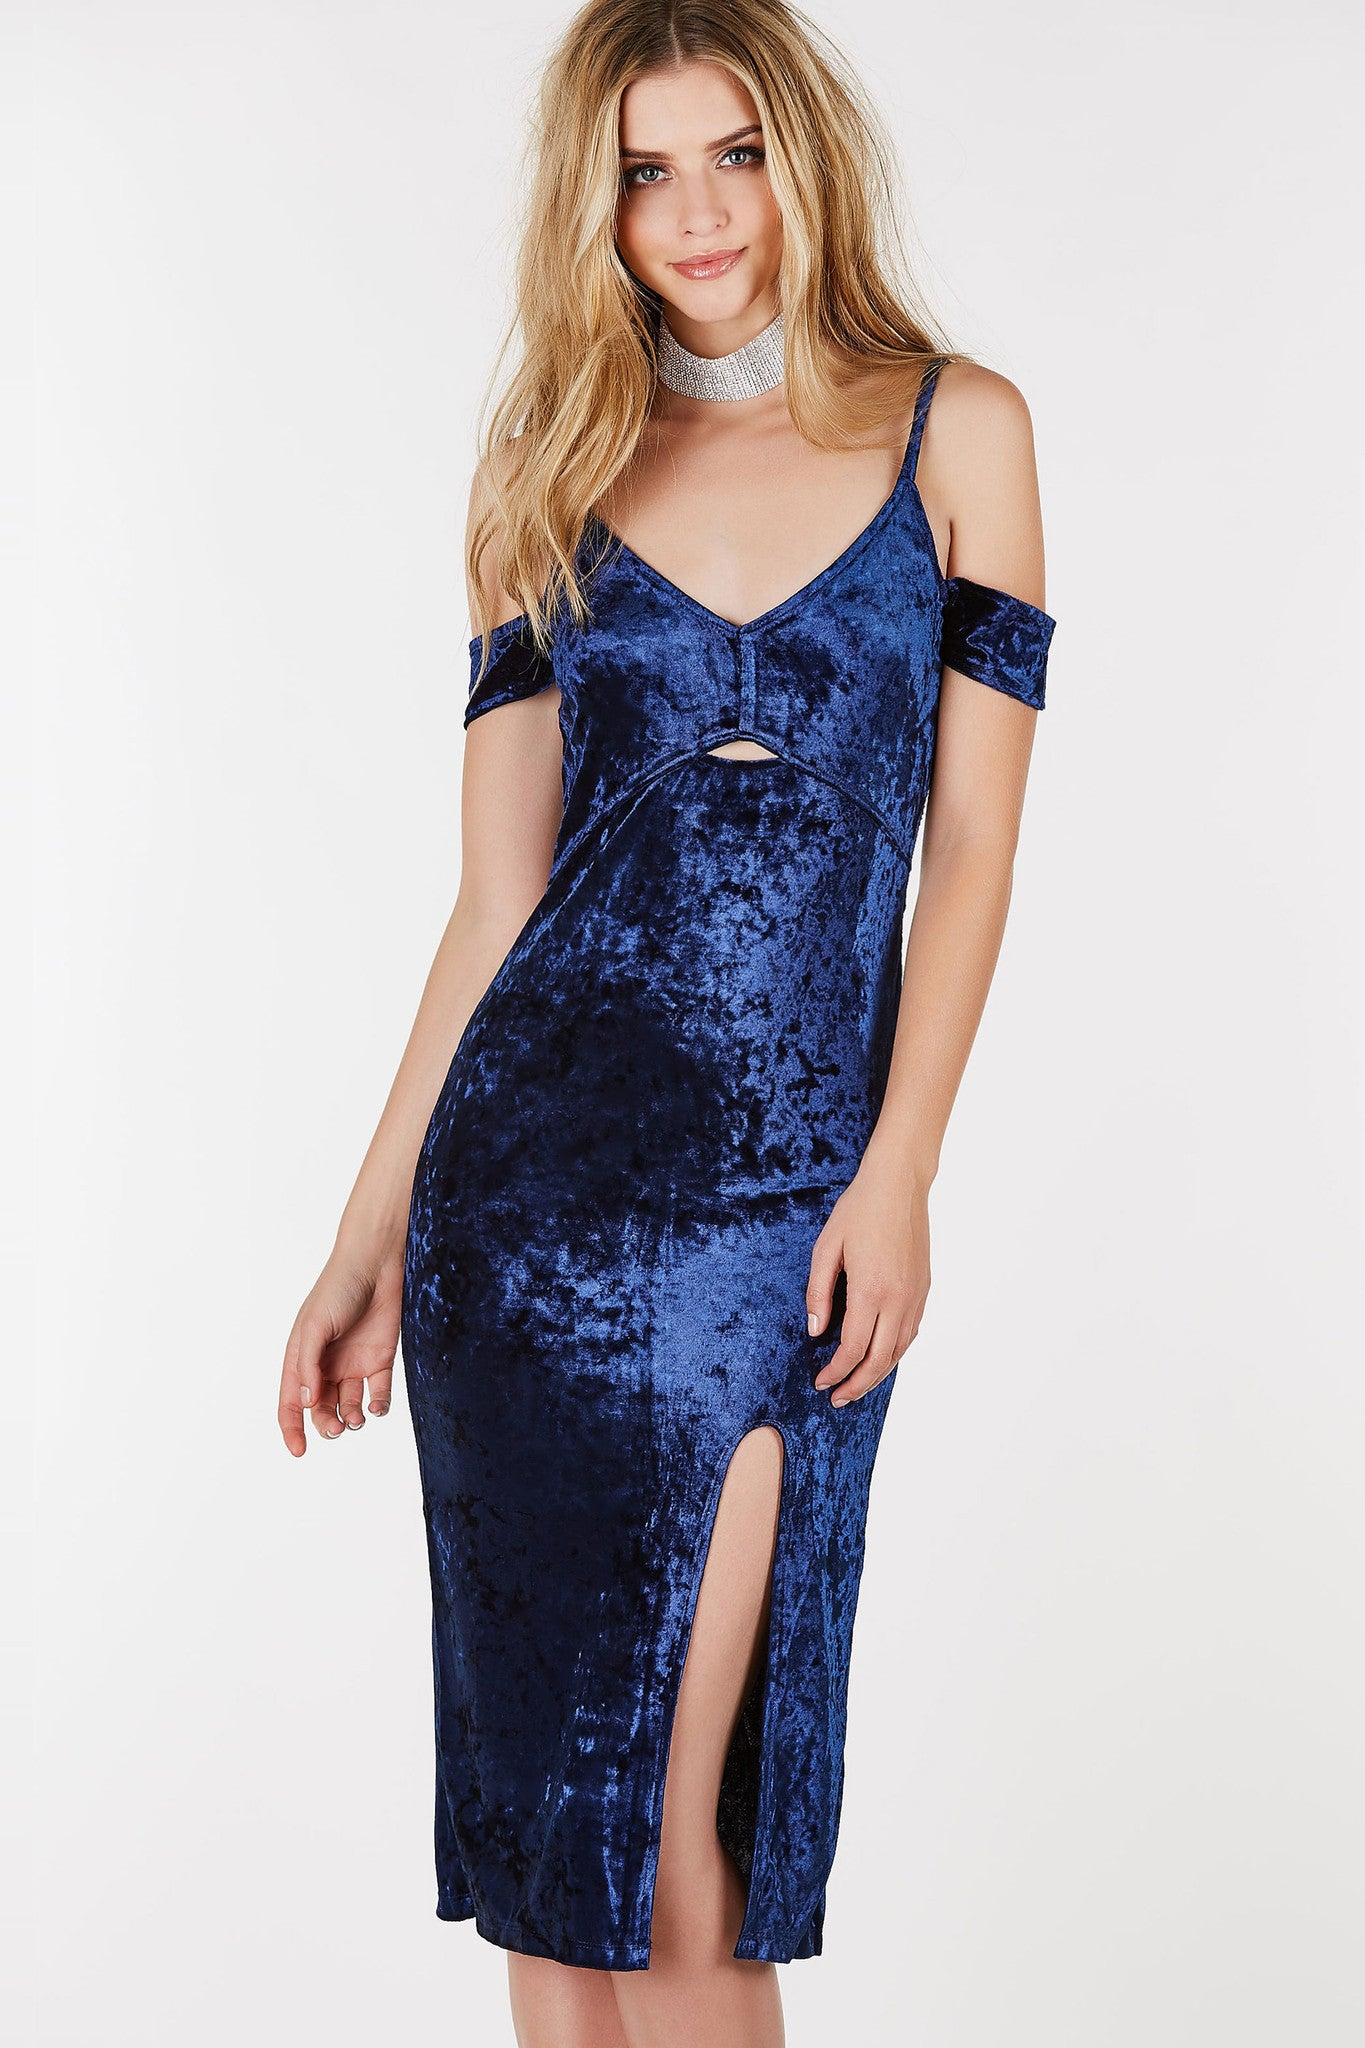 V-neck midi dress with cold shoulder cut outs. Velvet finish with slit in front.